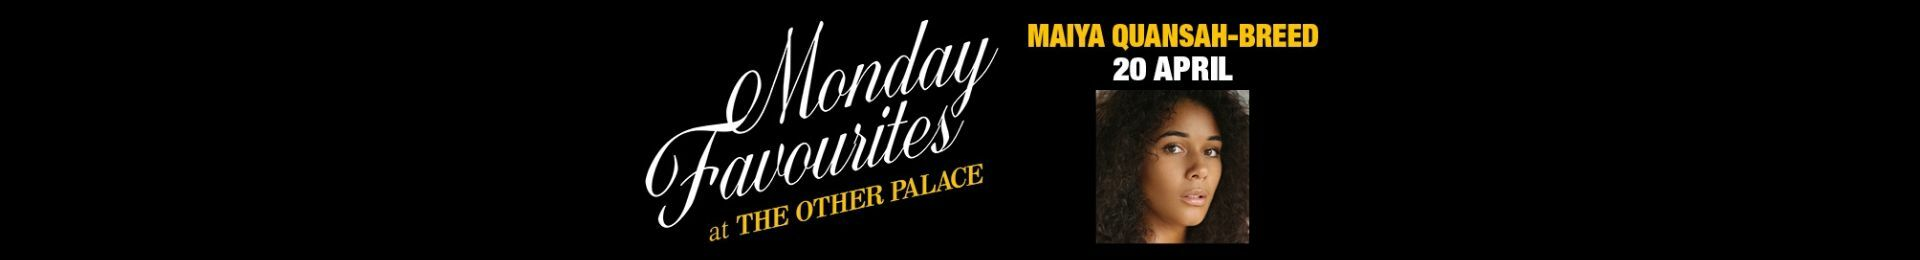 Monday Favourites at The Other Palace: Maiya Quansah-Breed banner image